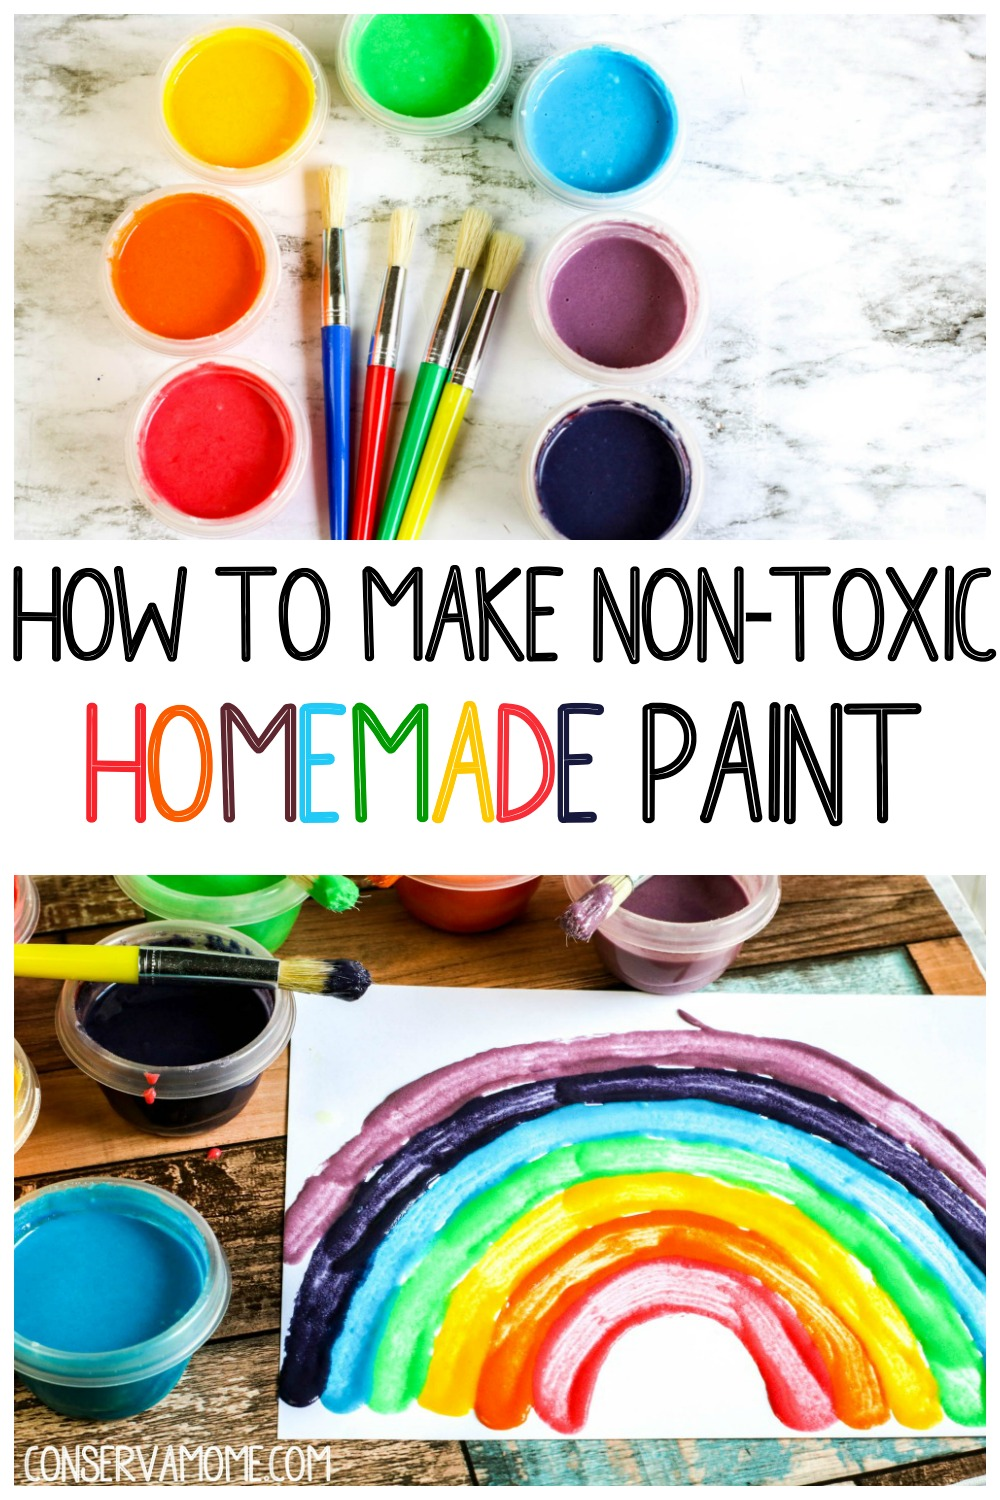 How to make non-toxic homemade paint